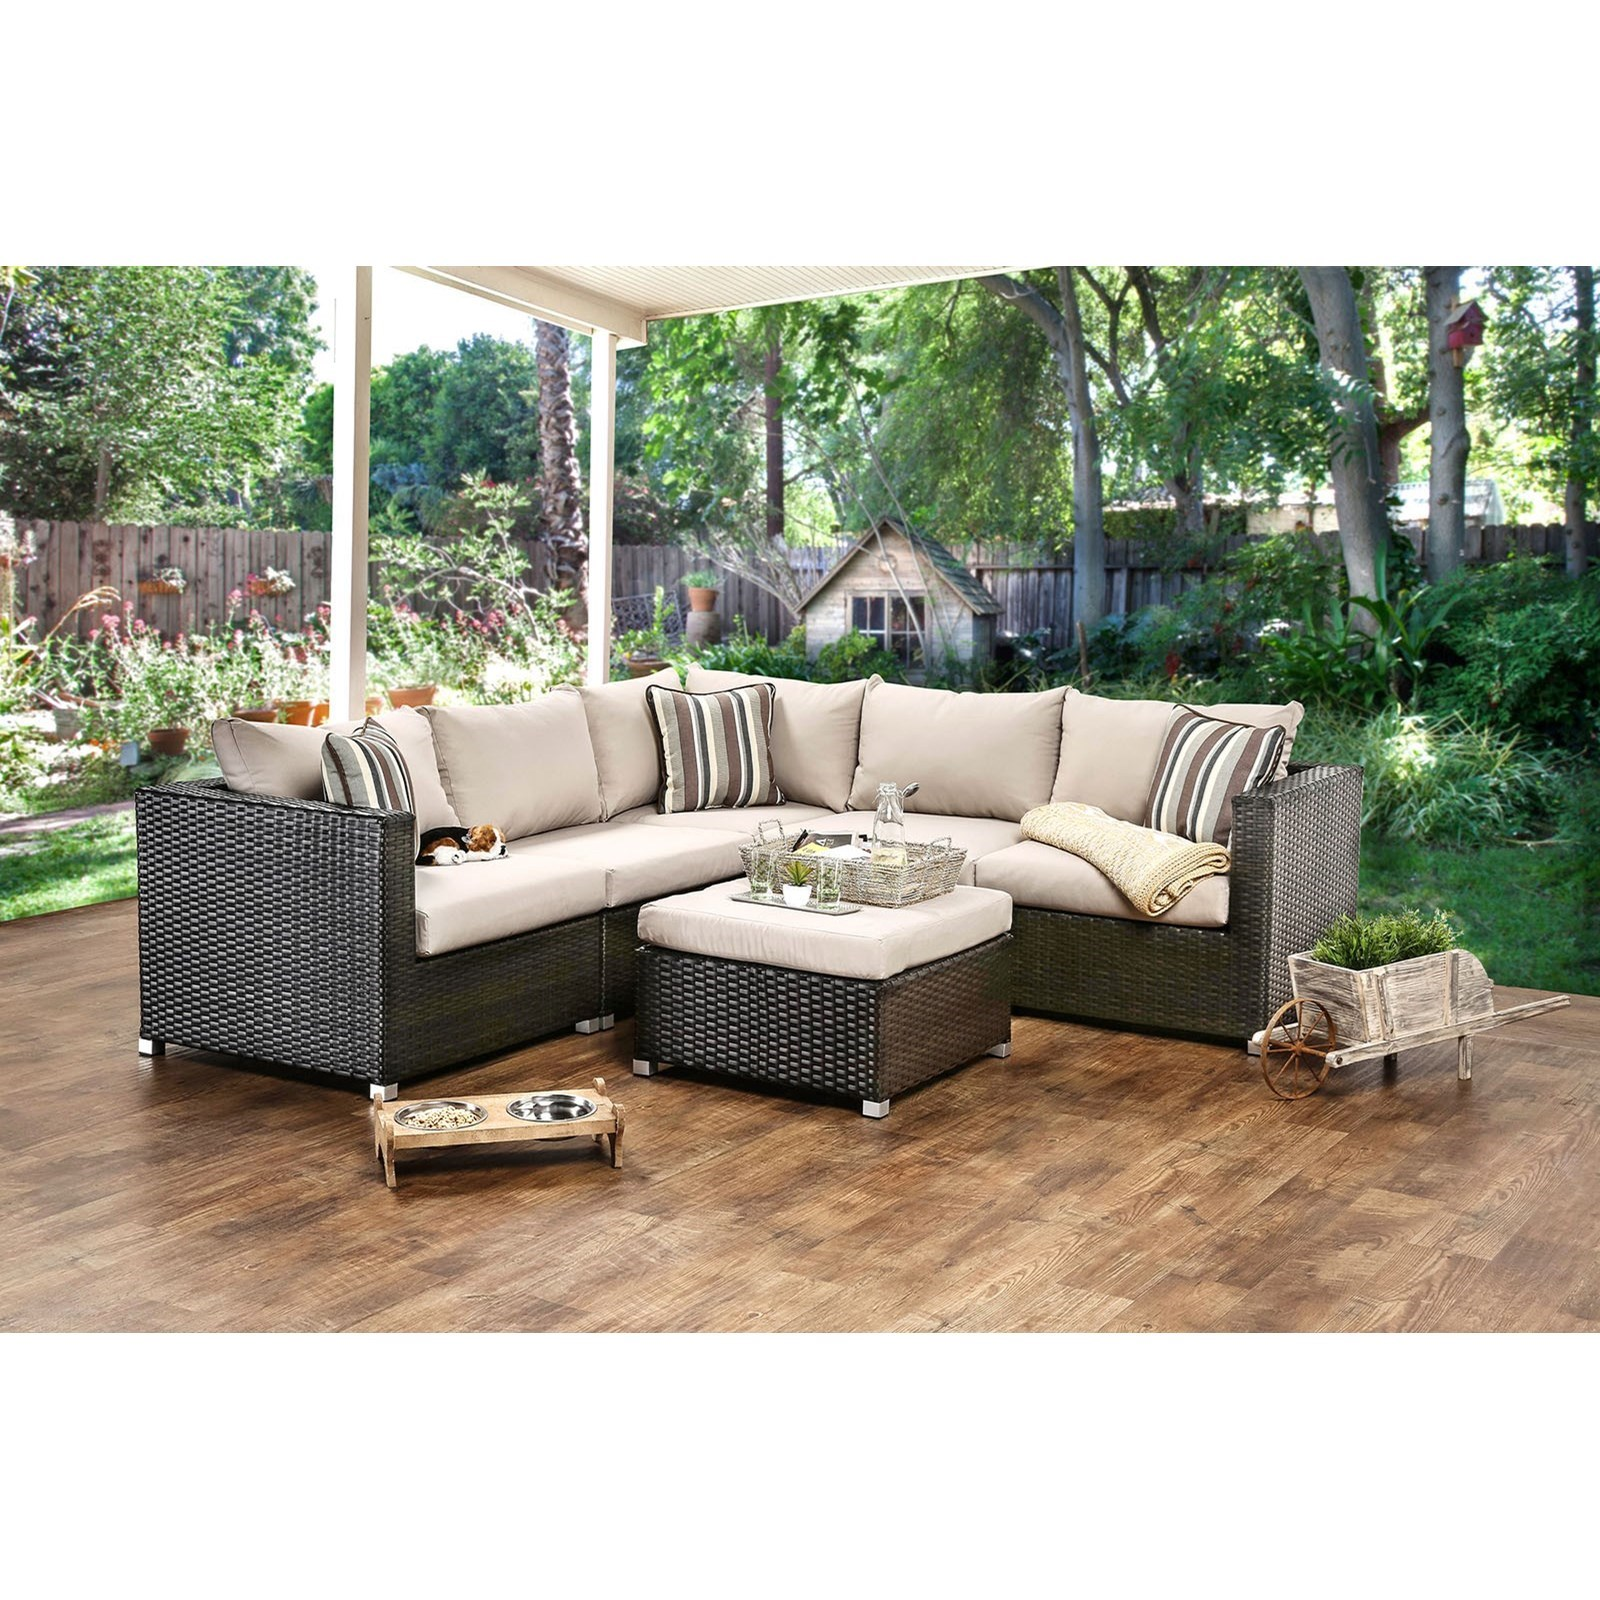 Abion 2 Pc. Arm Chairs by Furniture of America at Nassau Furniture and Mattress